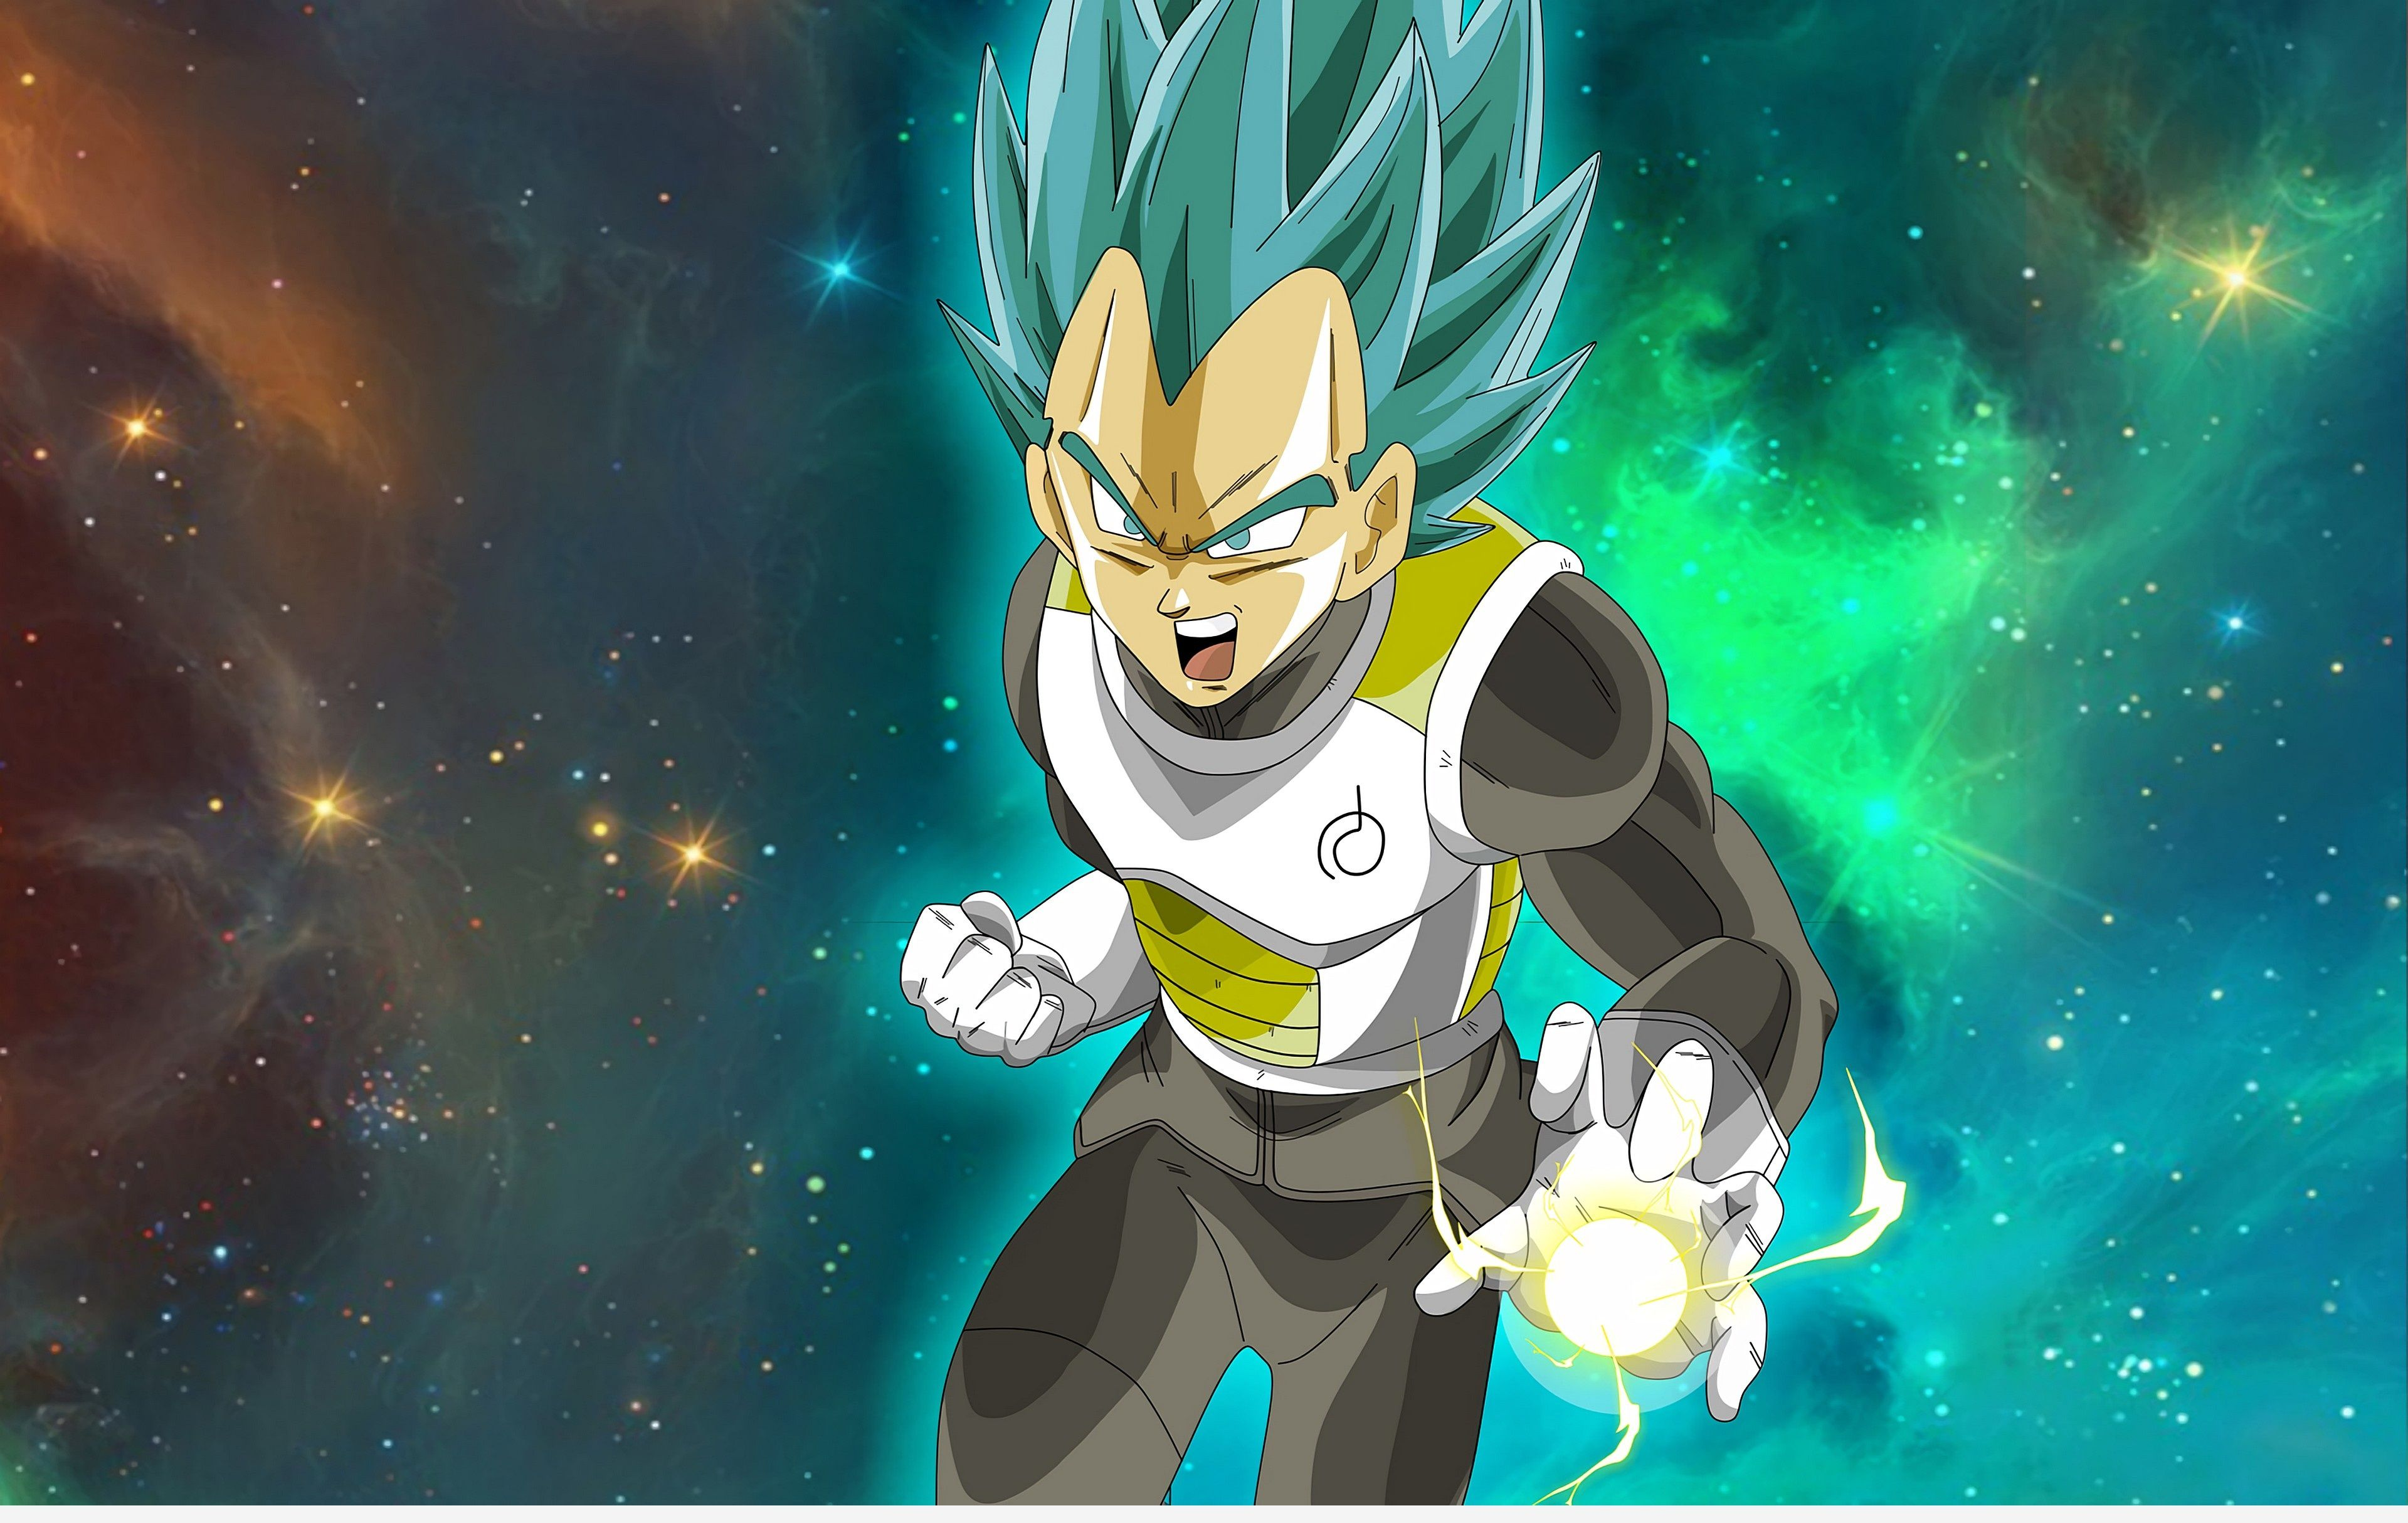 vegeta wallpaper full hd - http://desktopwallpaper/vegeta